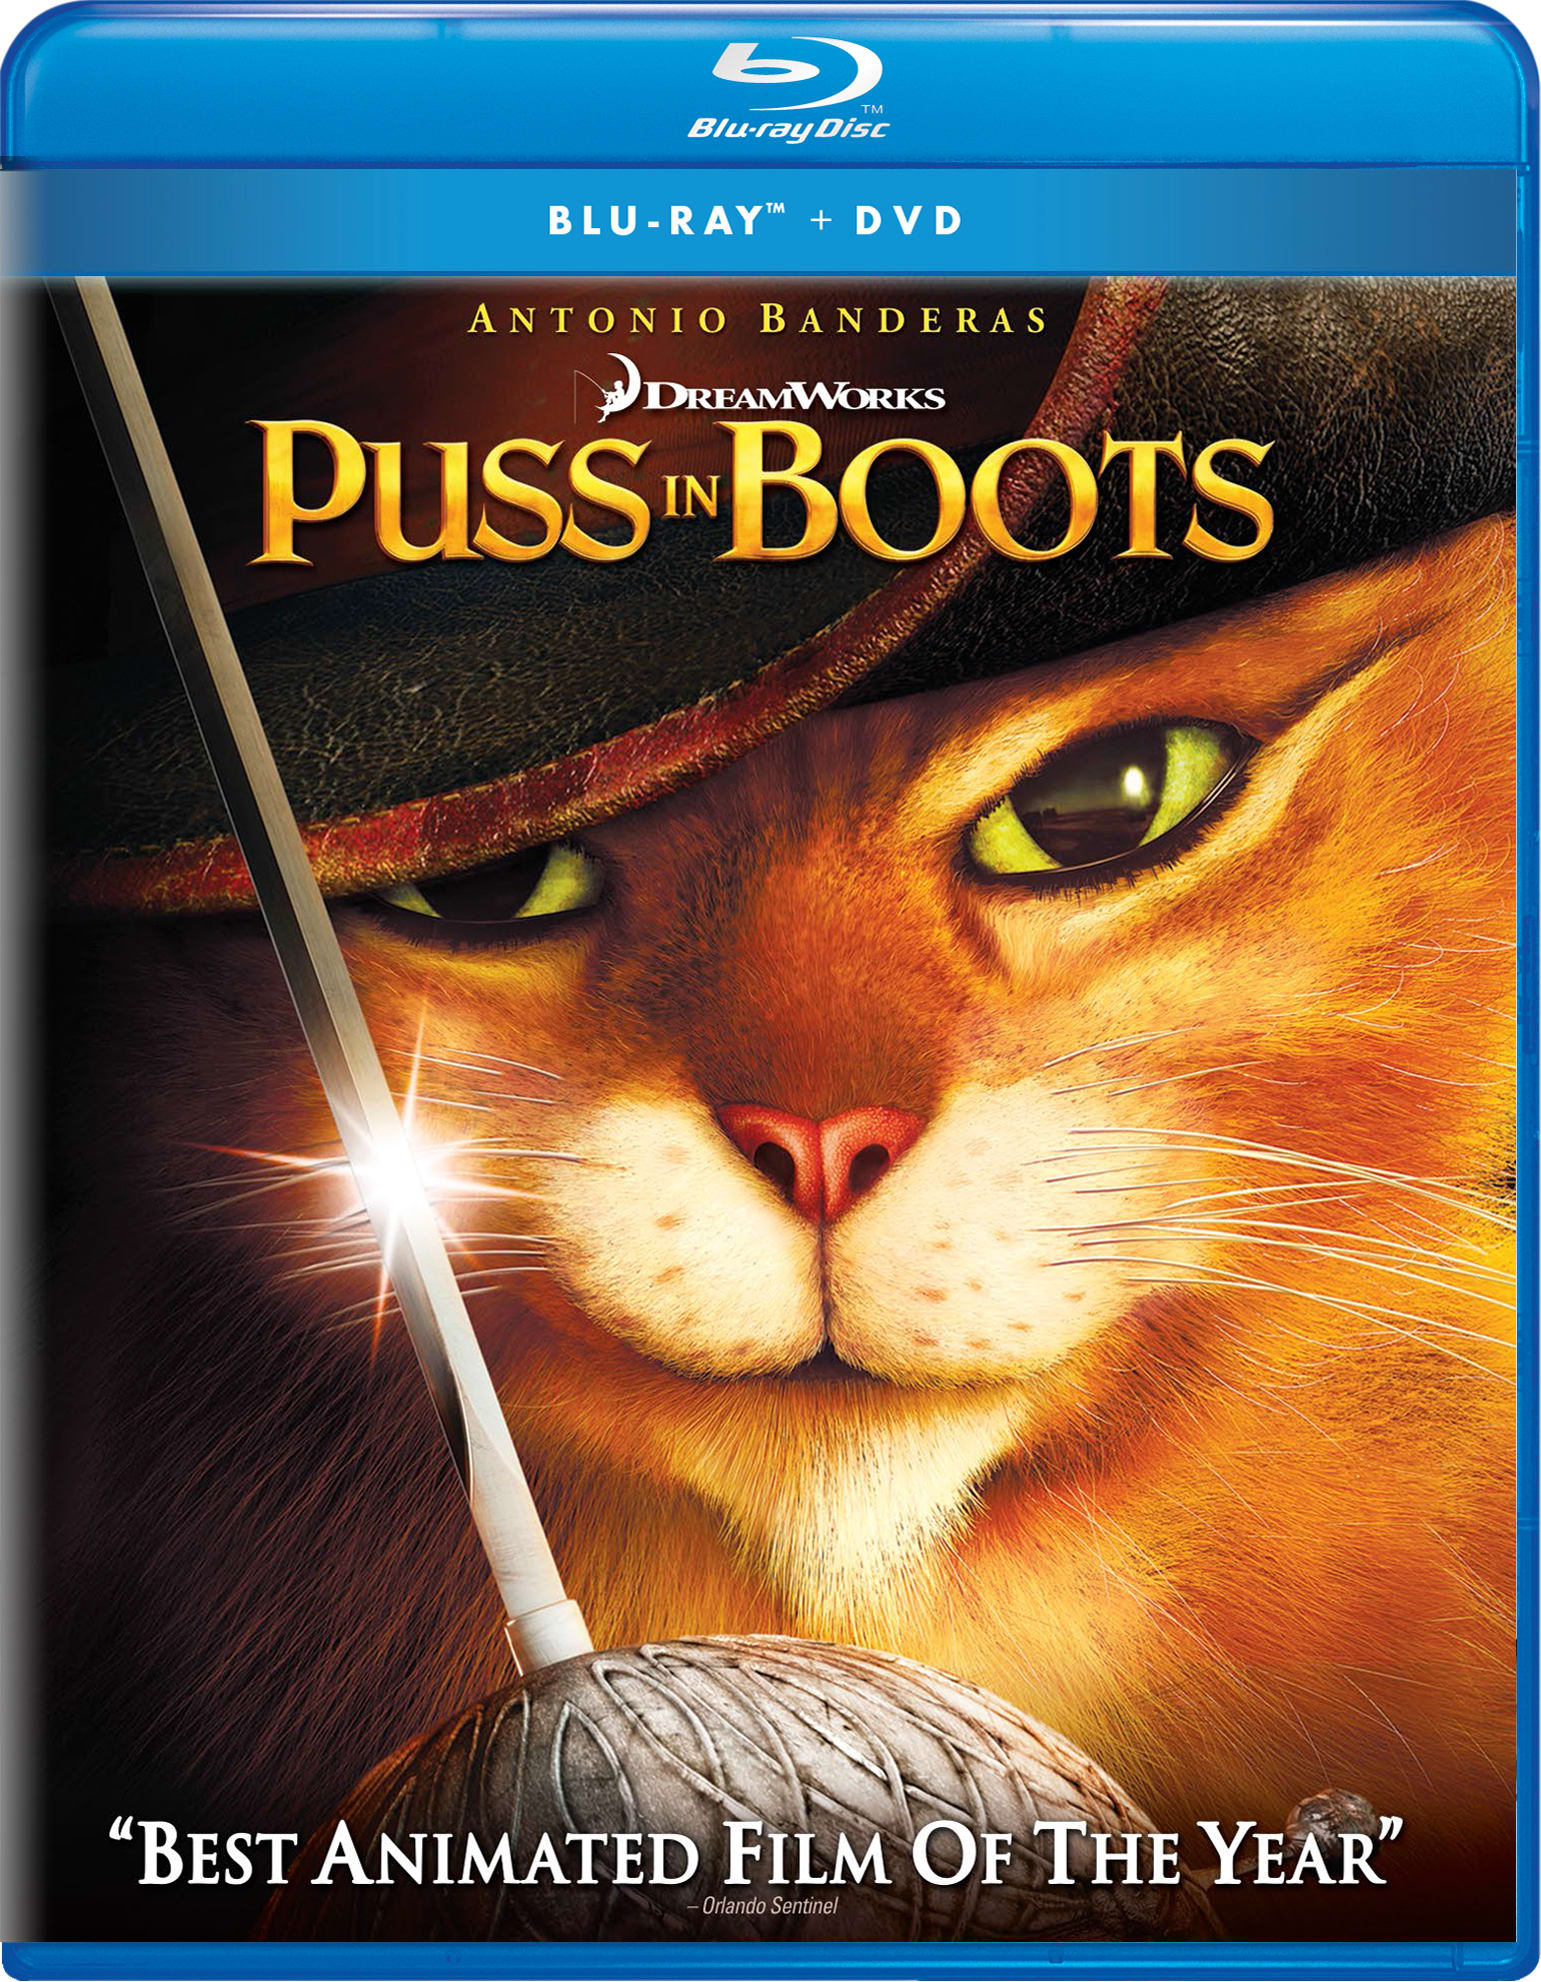 Puss in Boots (Digital) [Blu-ray]